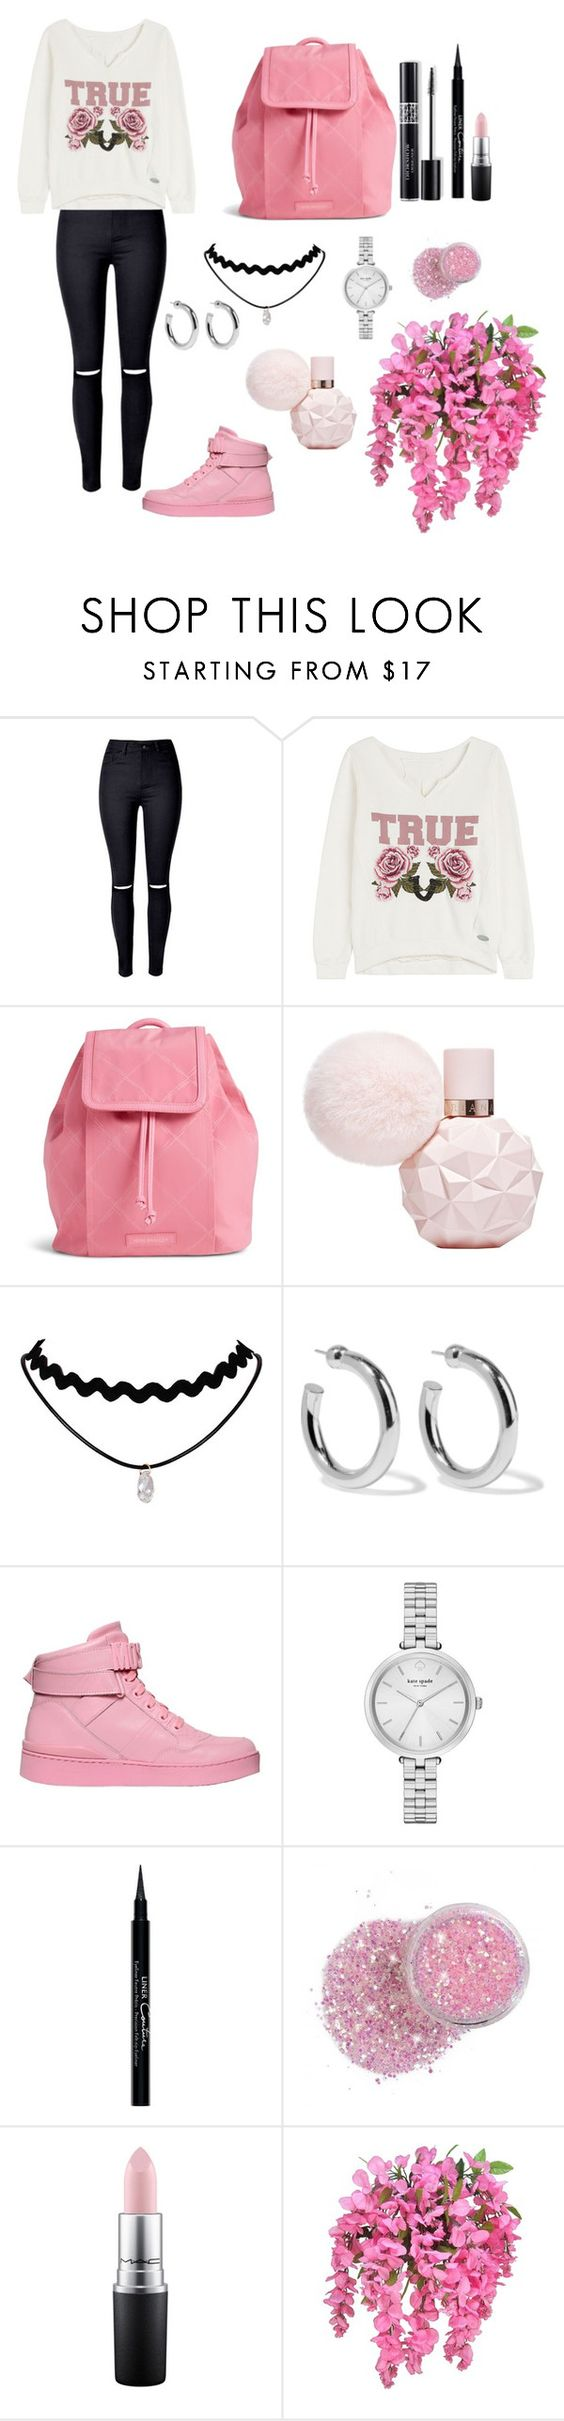 """""""Untitled #352"""" by lexikth ❤ liked on Polyvore featuring True Religion, Vera Bradley, Sophie Buhai, Moschino, Kate Spade, Christian Dior, Givenchy and MAC Cosmetics"""